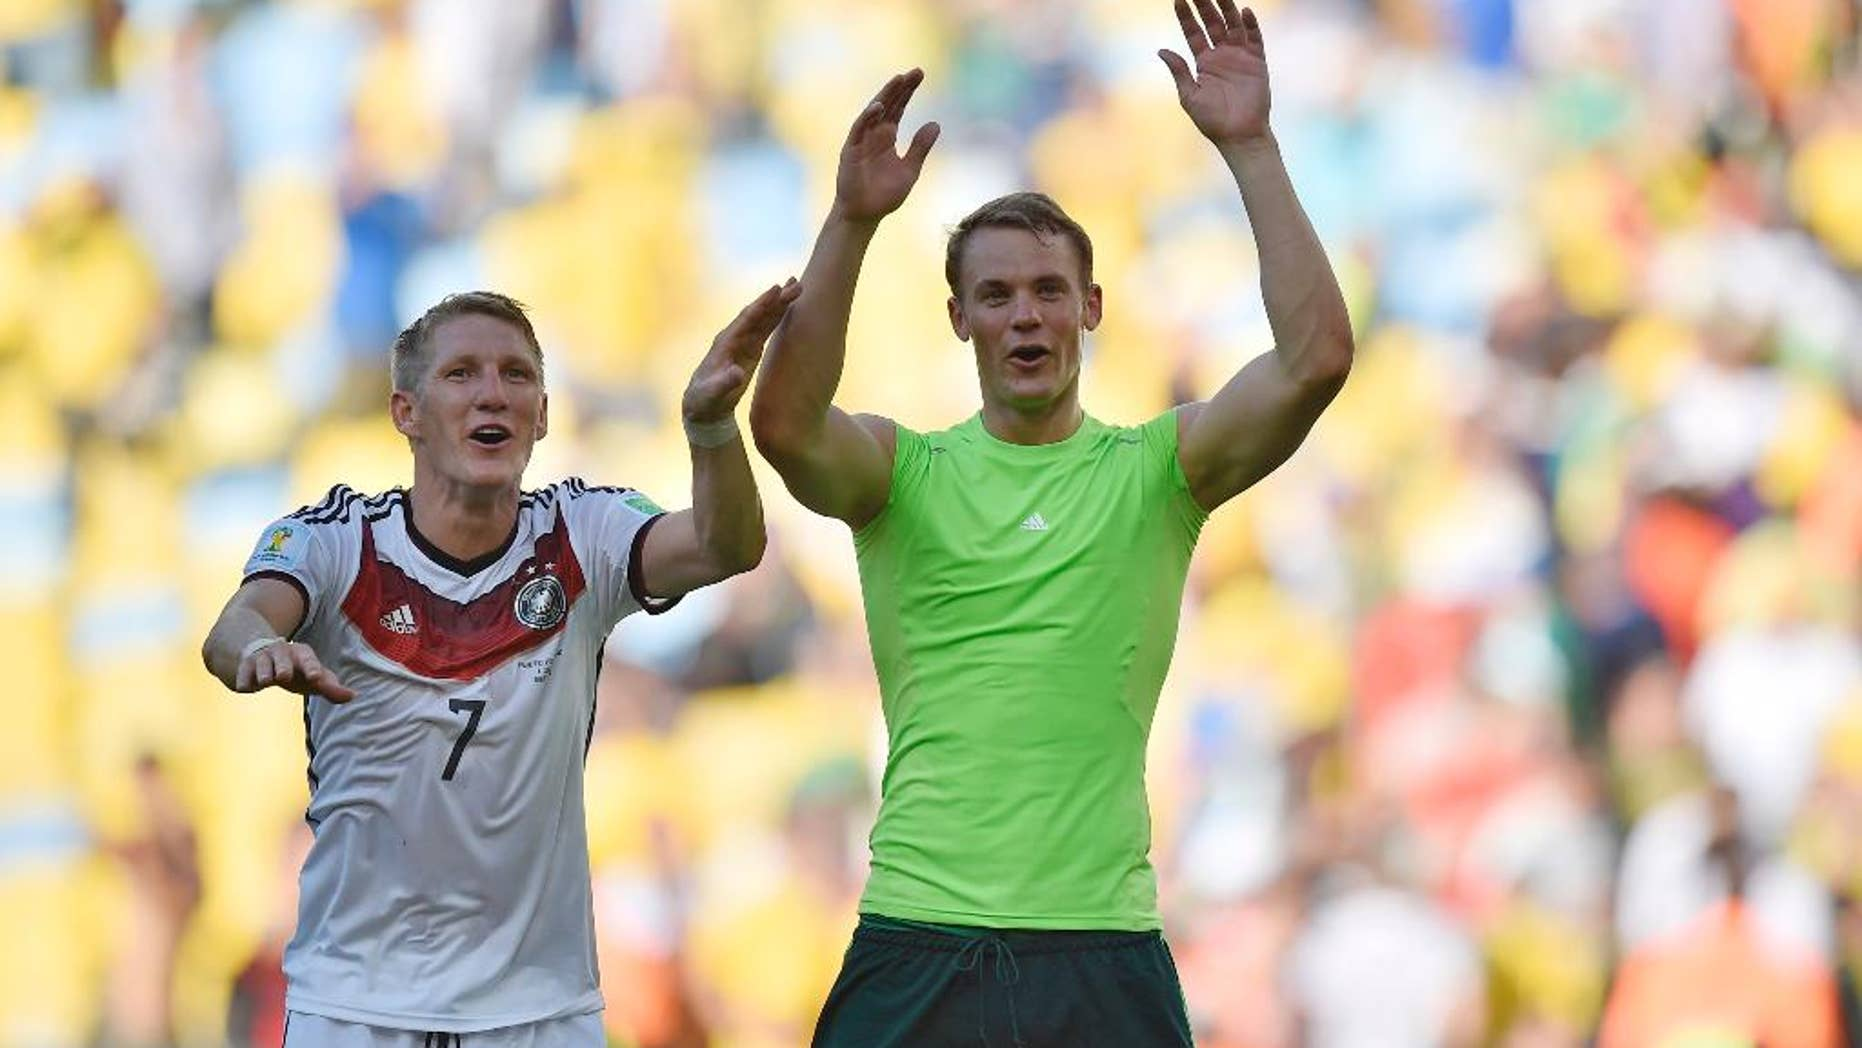 Germany's Bastian Schweinsteiger, left, and goalkeeper Manuel Neuer celebrate at the end of  the World Cup quarterfinal soccer match between Germany and France at the Maracana Stadium in Rio de Janeiro, Brazil, Friday, July 4, 2014. Germany won the match 1-0.   (AP Photo/Martin Meissner)